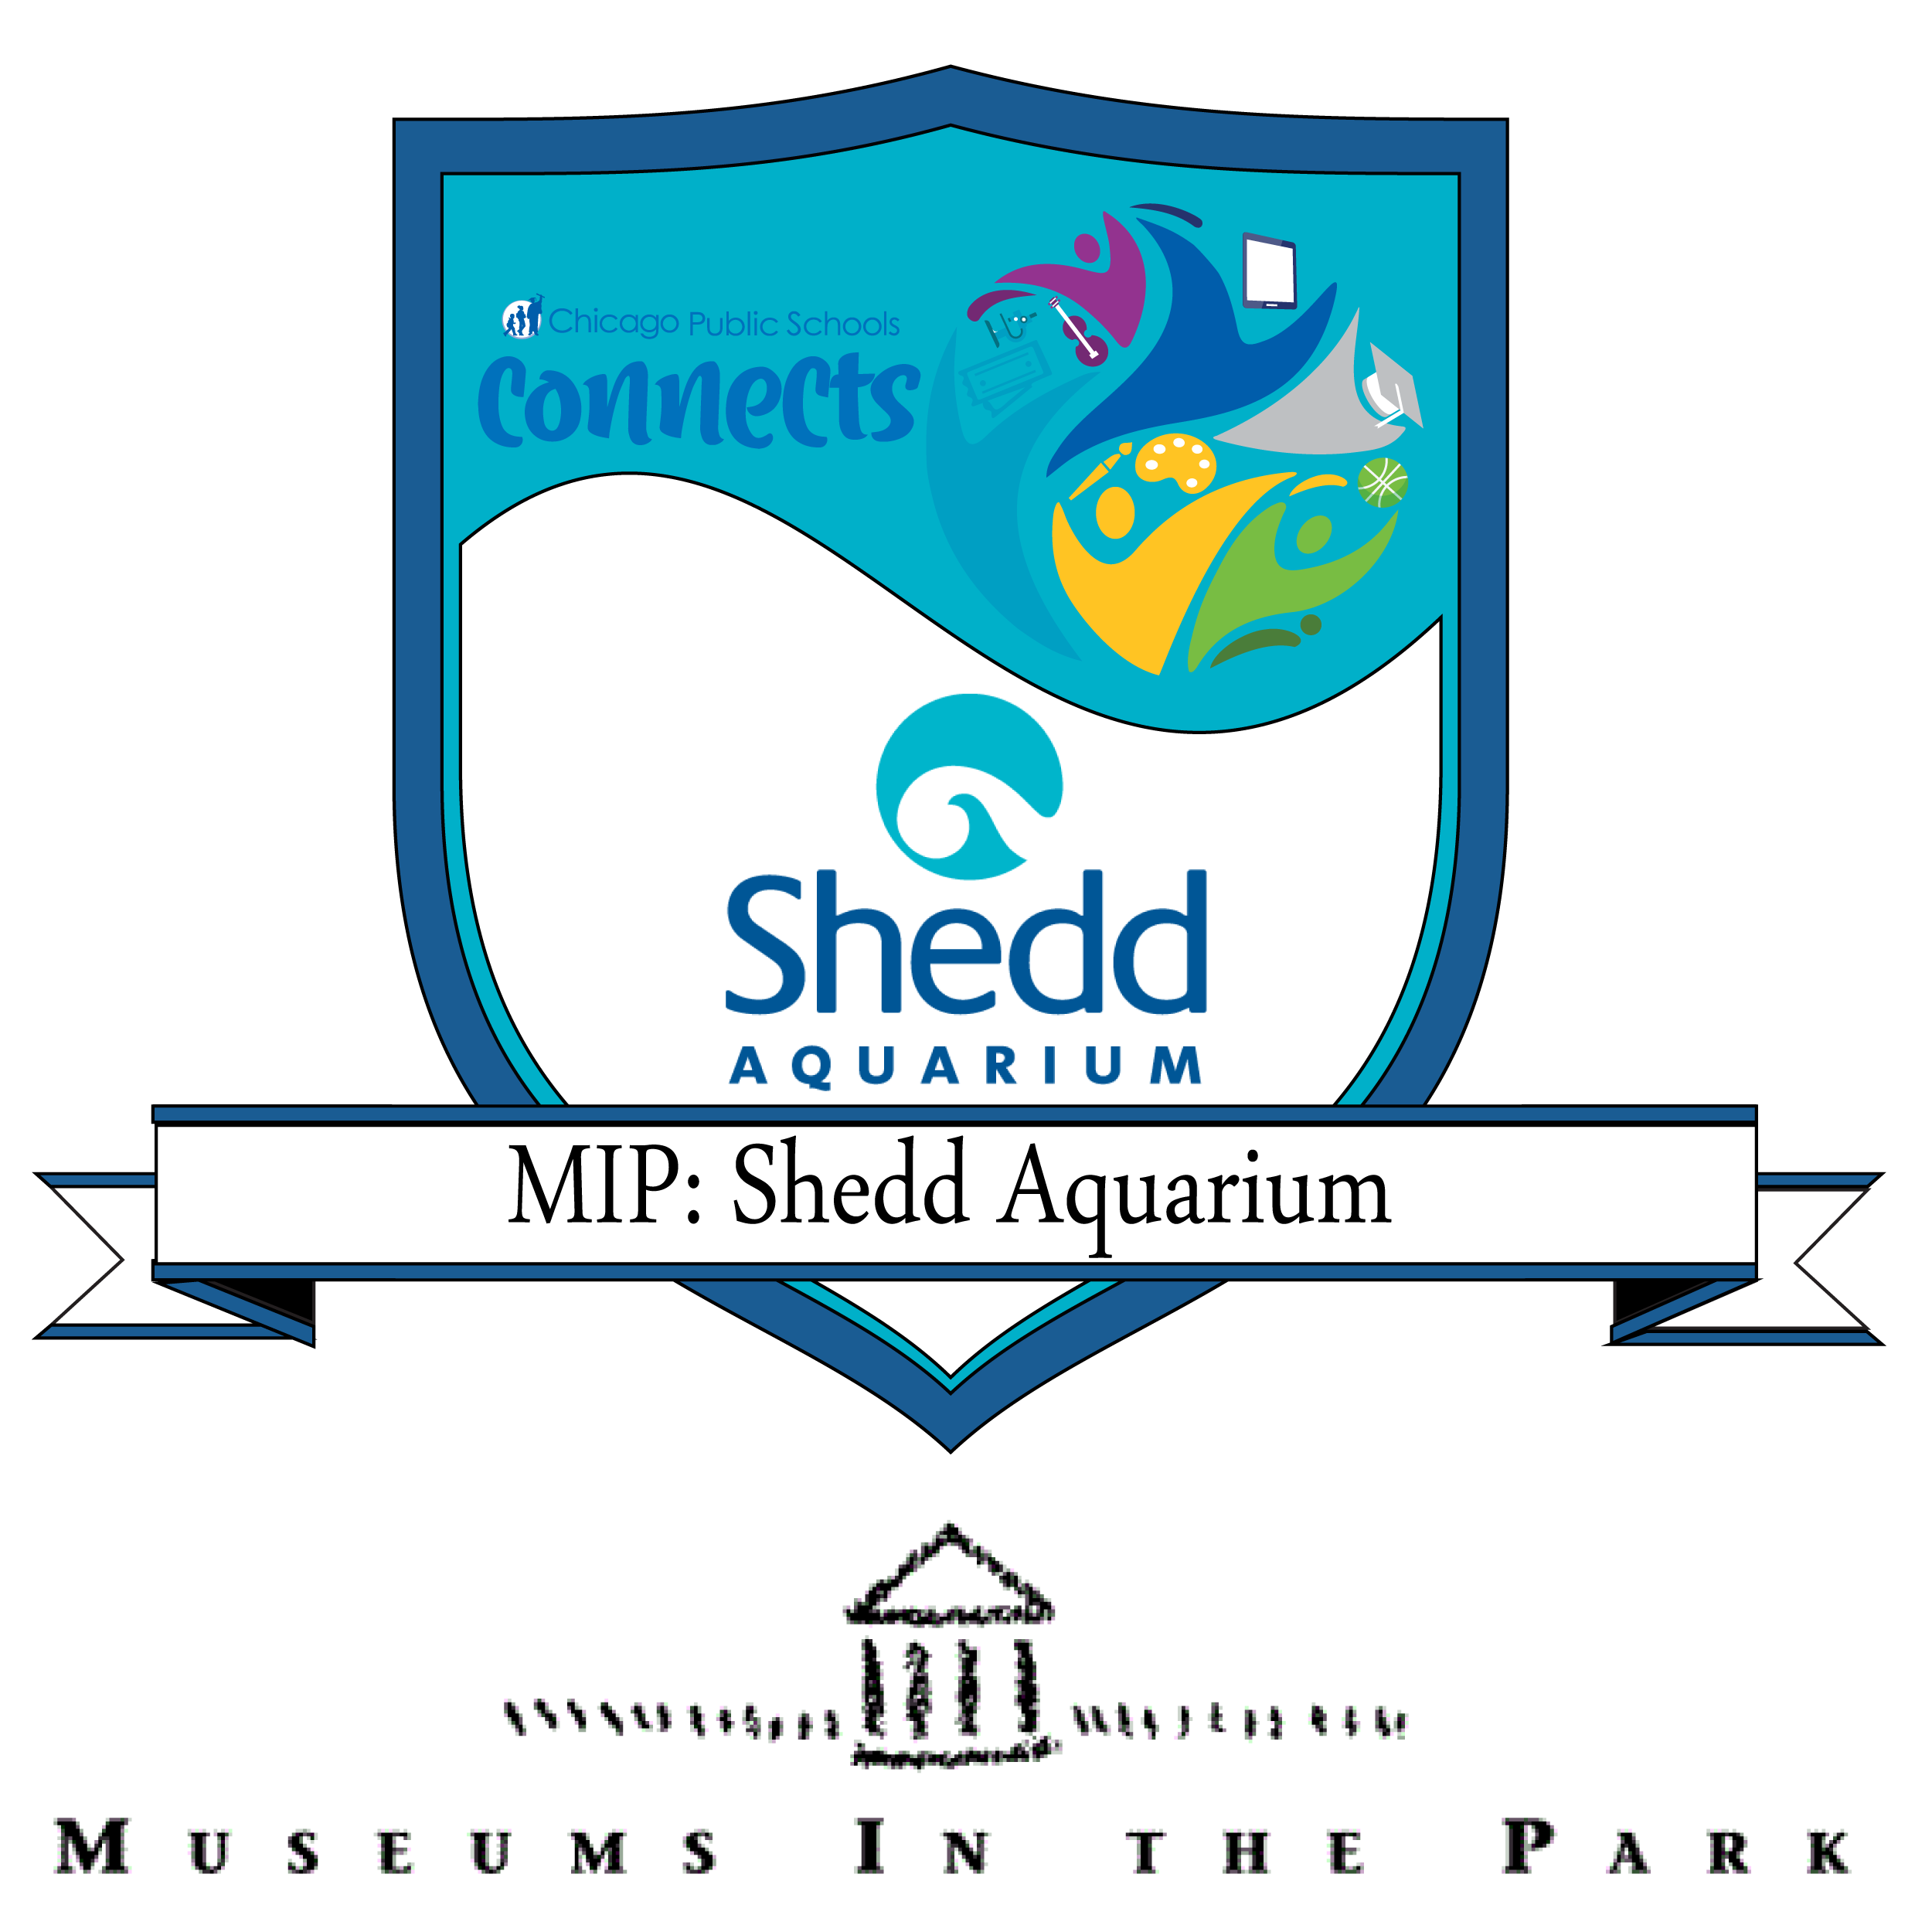 Museums in the Park: Shedd Aquarium